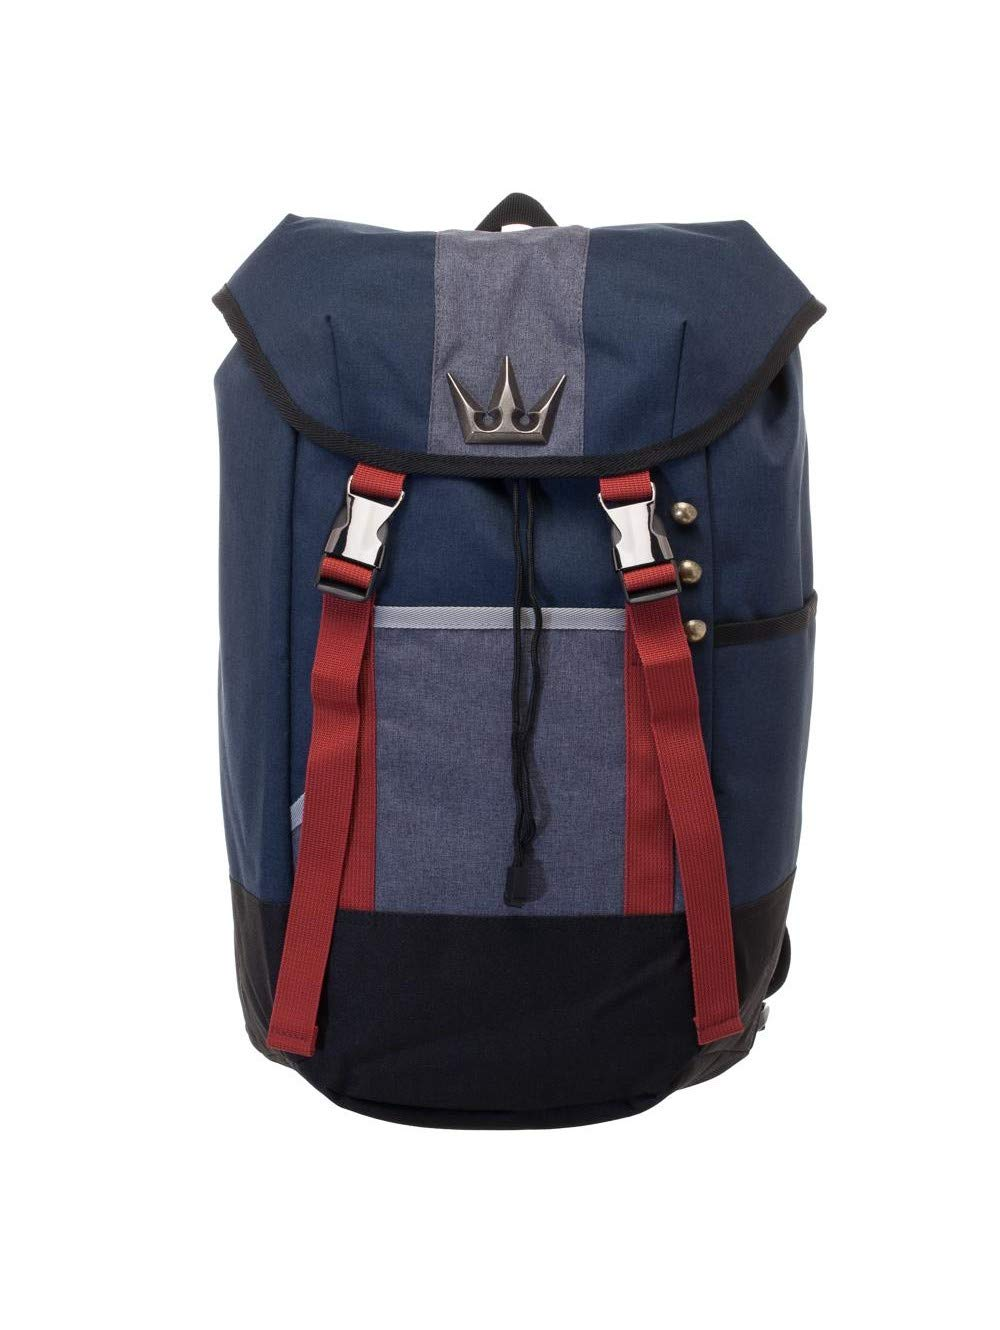 Kingdom Hearts - Navy Blue, Red, and Grey Gamer Backpack